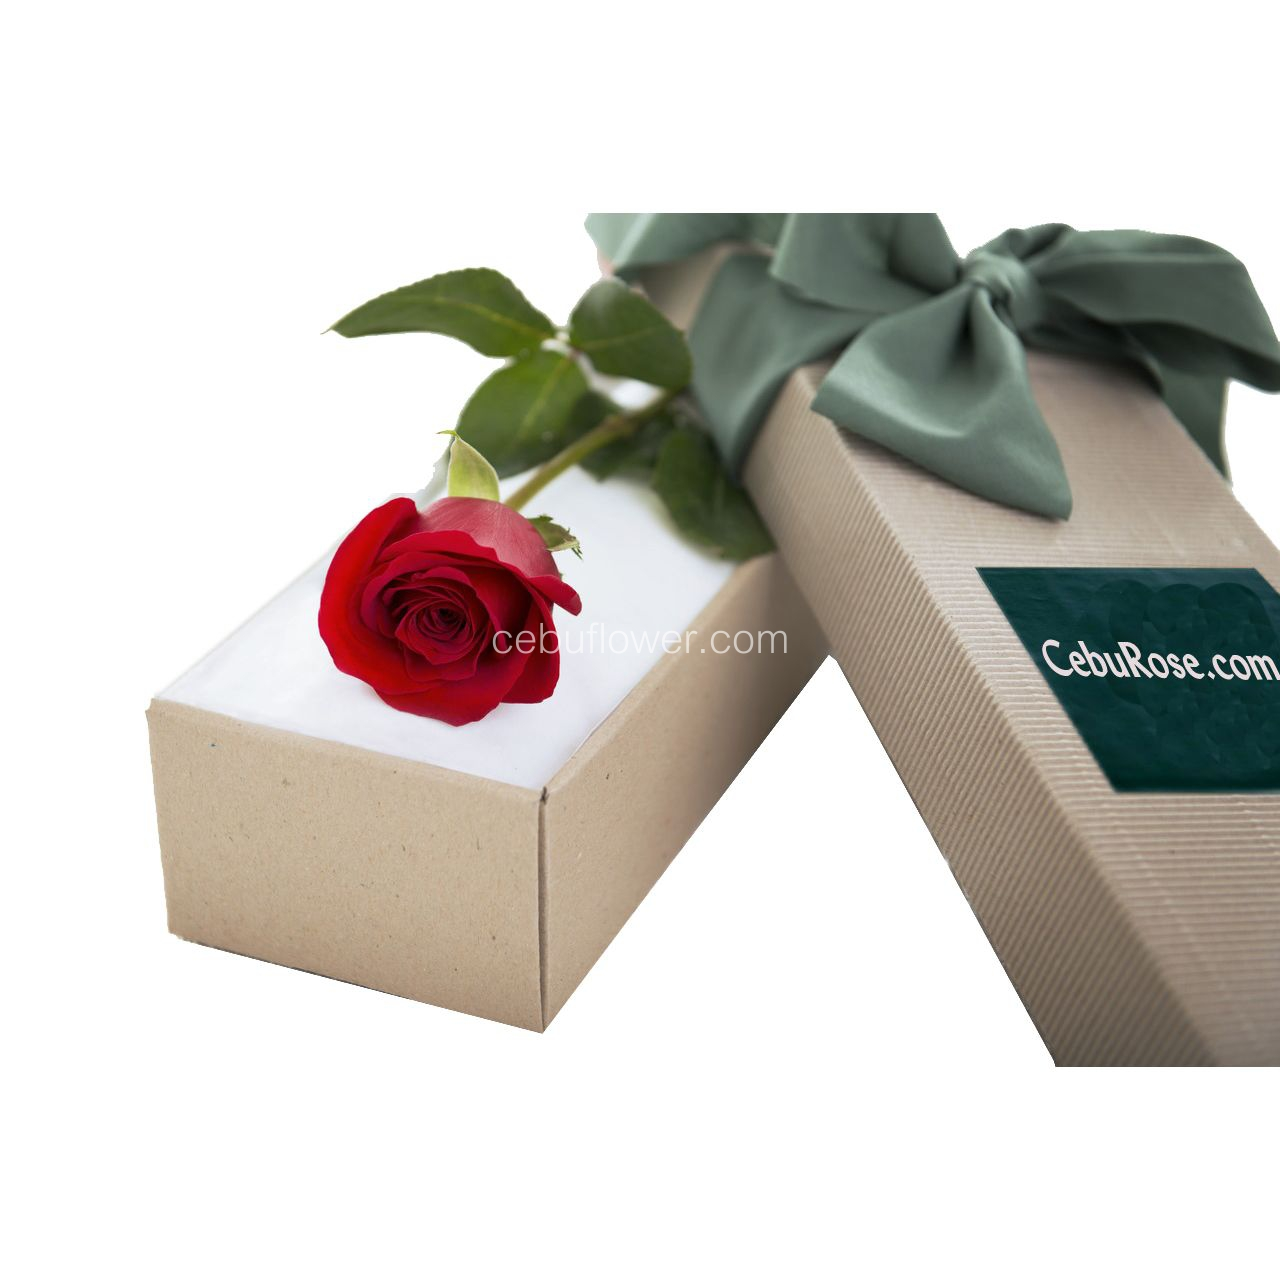 Single Red Rose in Box Send to Cebu, Delivery Single Red Roses in ...